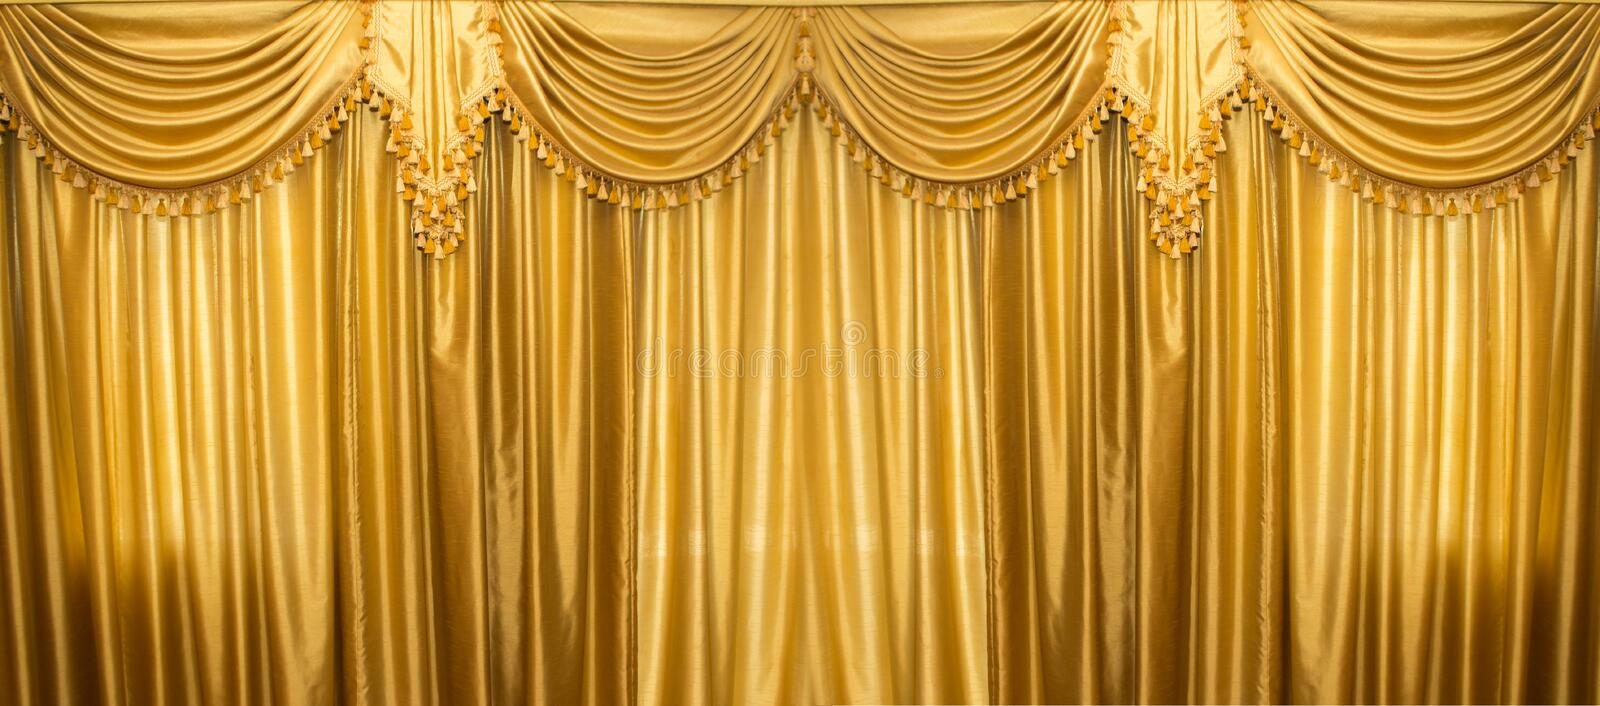 Gold curtains on stage. For background stock image